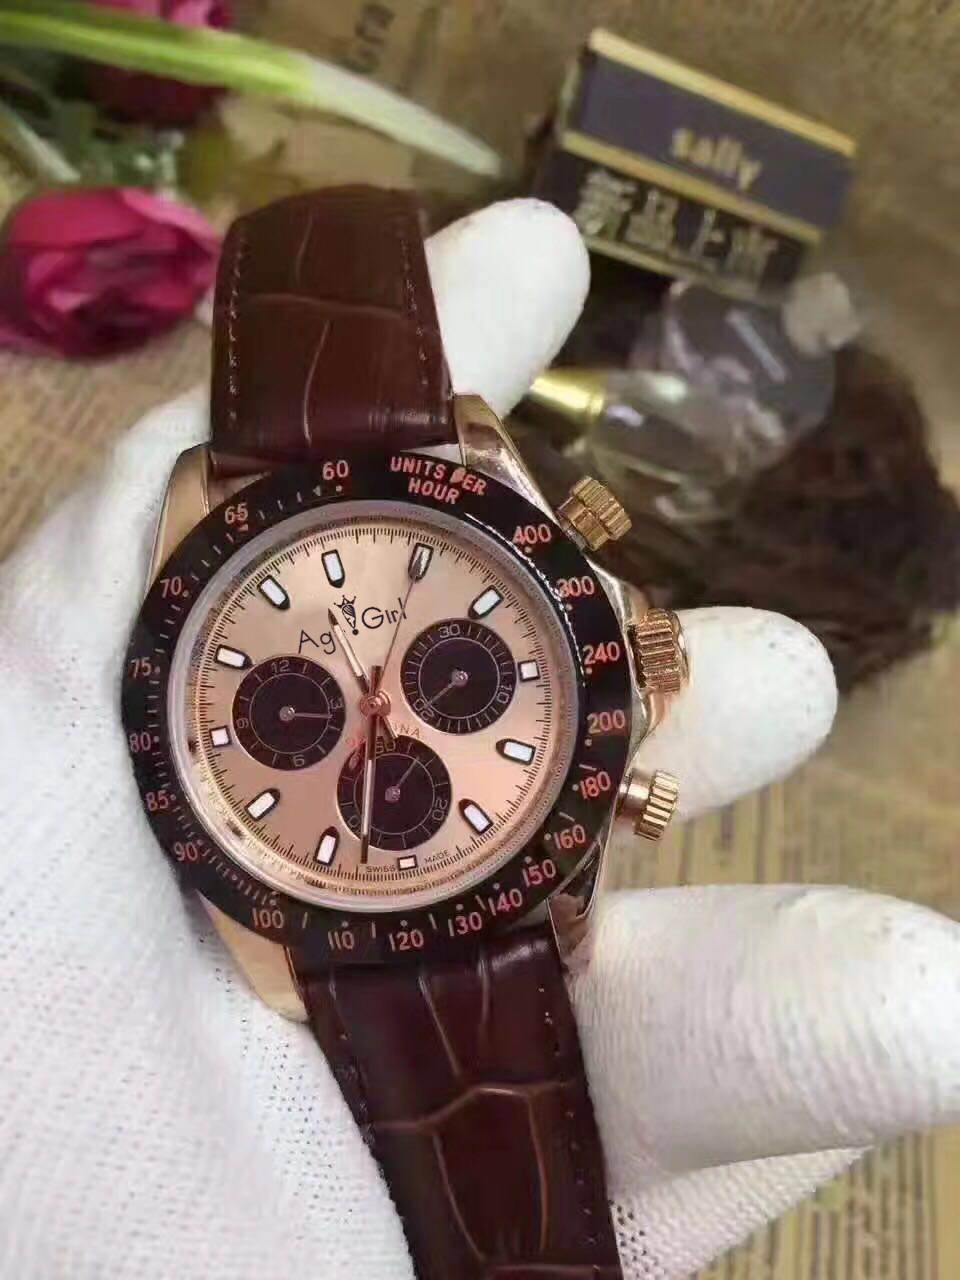 Brand New Mens Luxury Rose Gold Chocolate Ceramic Bezel Brown Leather Gents Automatic Mechanical Sapphire Watches AAA+ QualityBrand New Mens Luxury Rose Gold Chocolate Ceramic Bezel Brown Leather Gents Automatic Mechanical Sapphire Watches AAA+ Quality